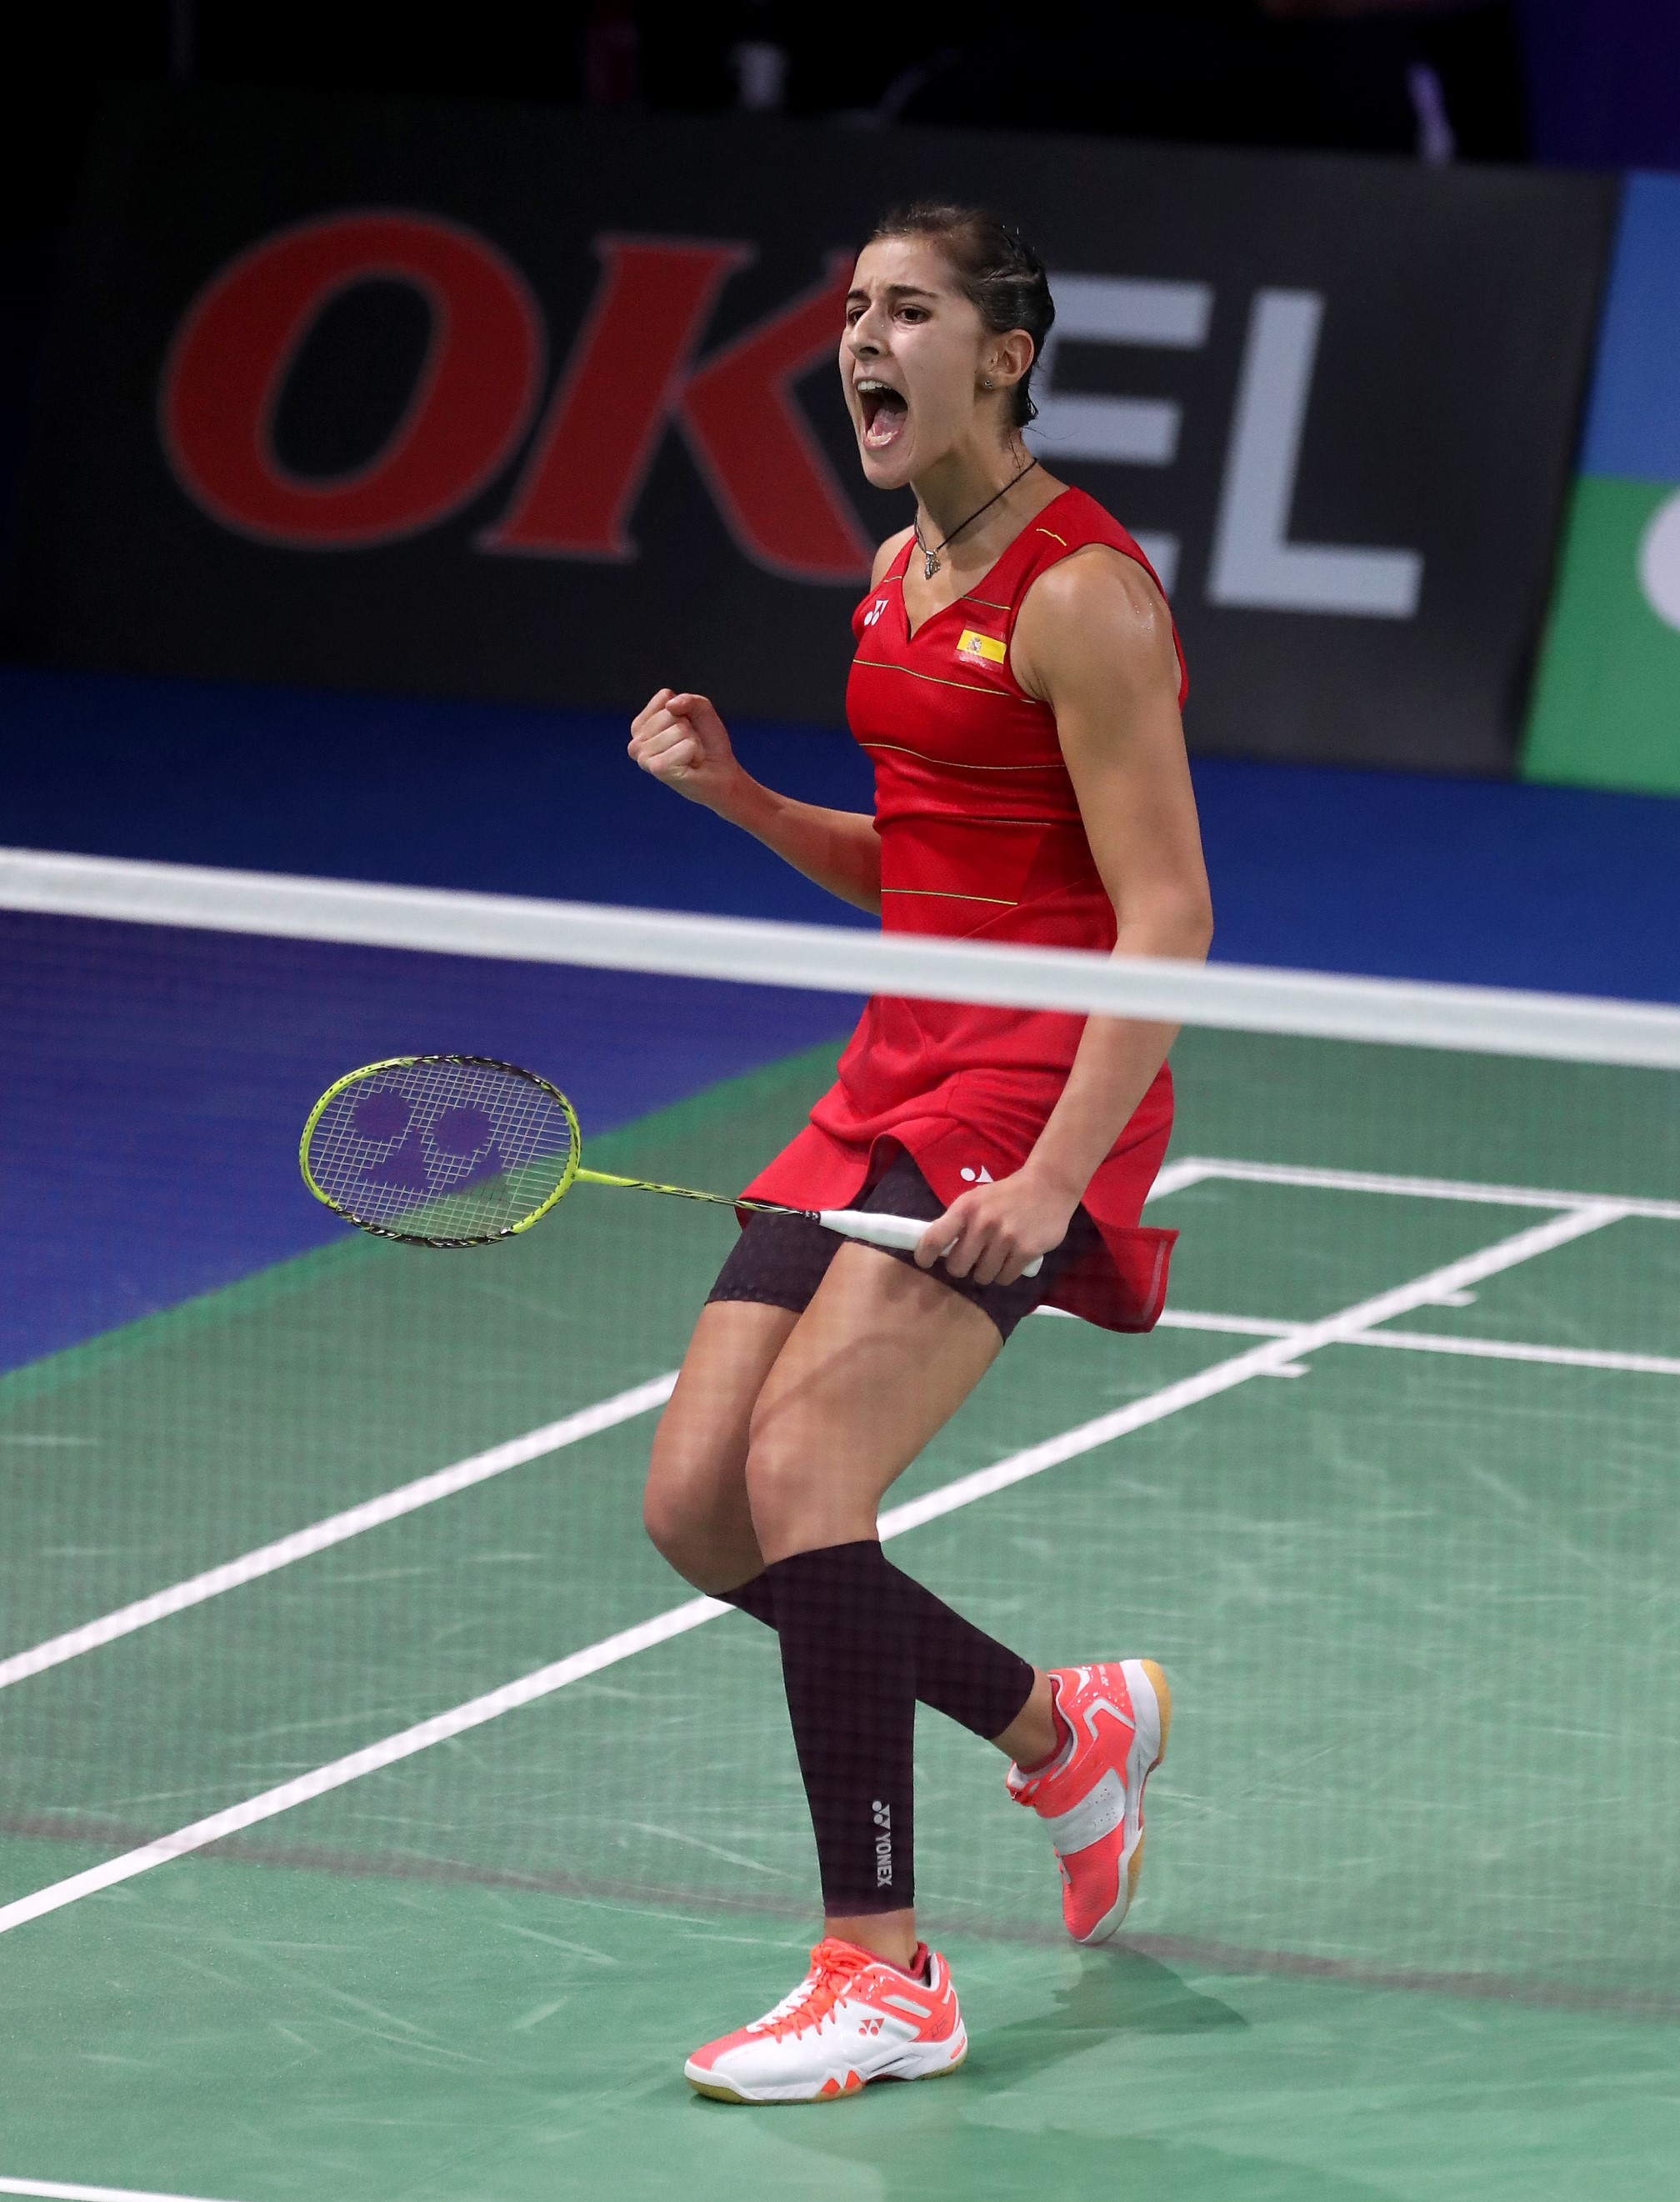 denmark-open-2016-day-4-carolina-marin-of-spain